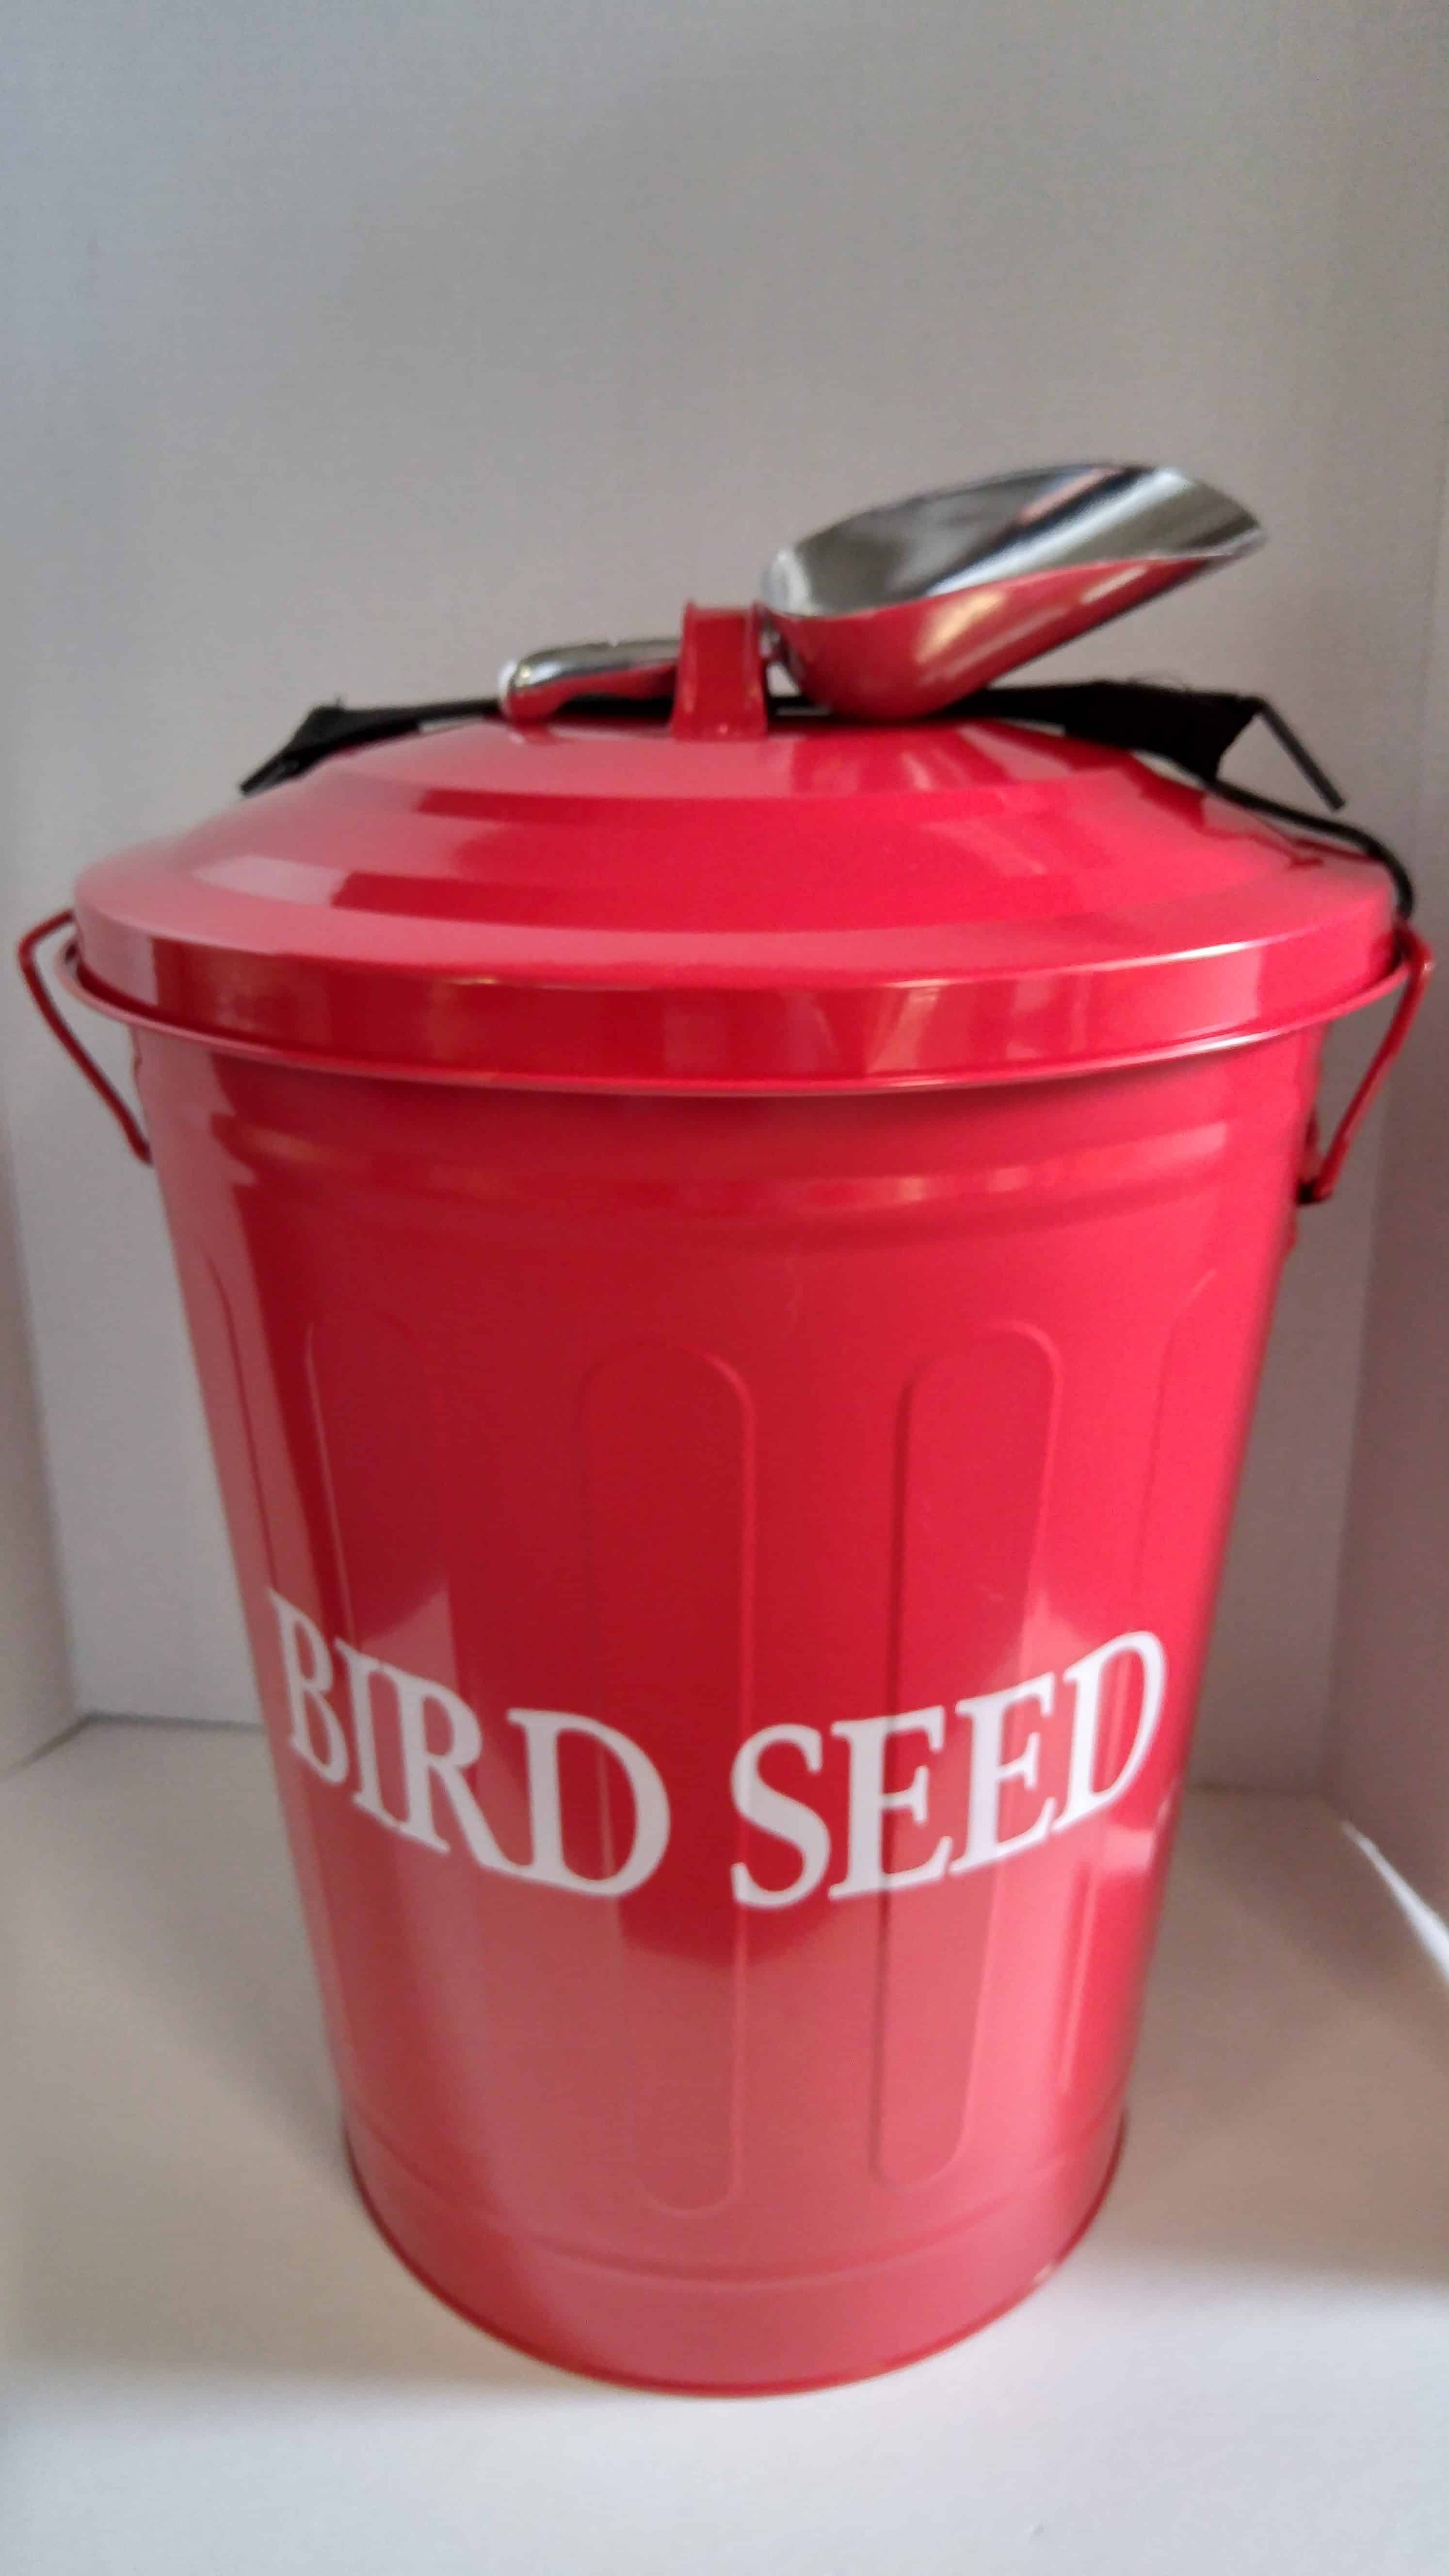 HBT-001RS Metal Seed Container in RED